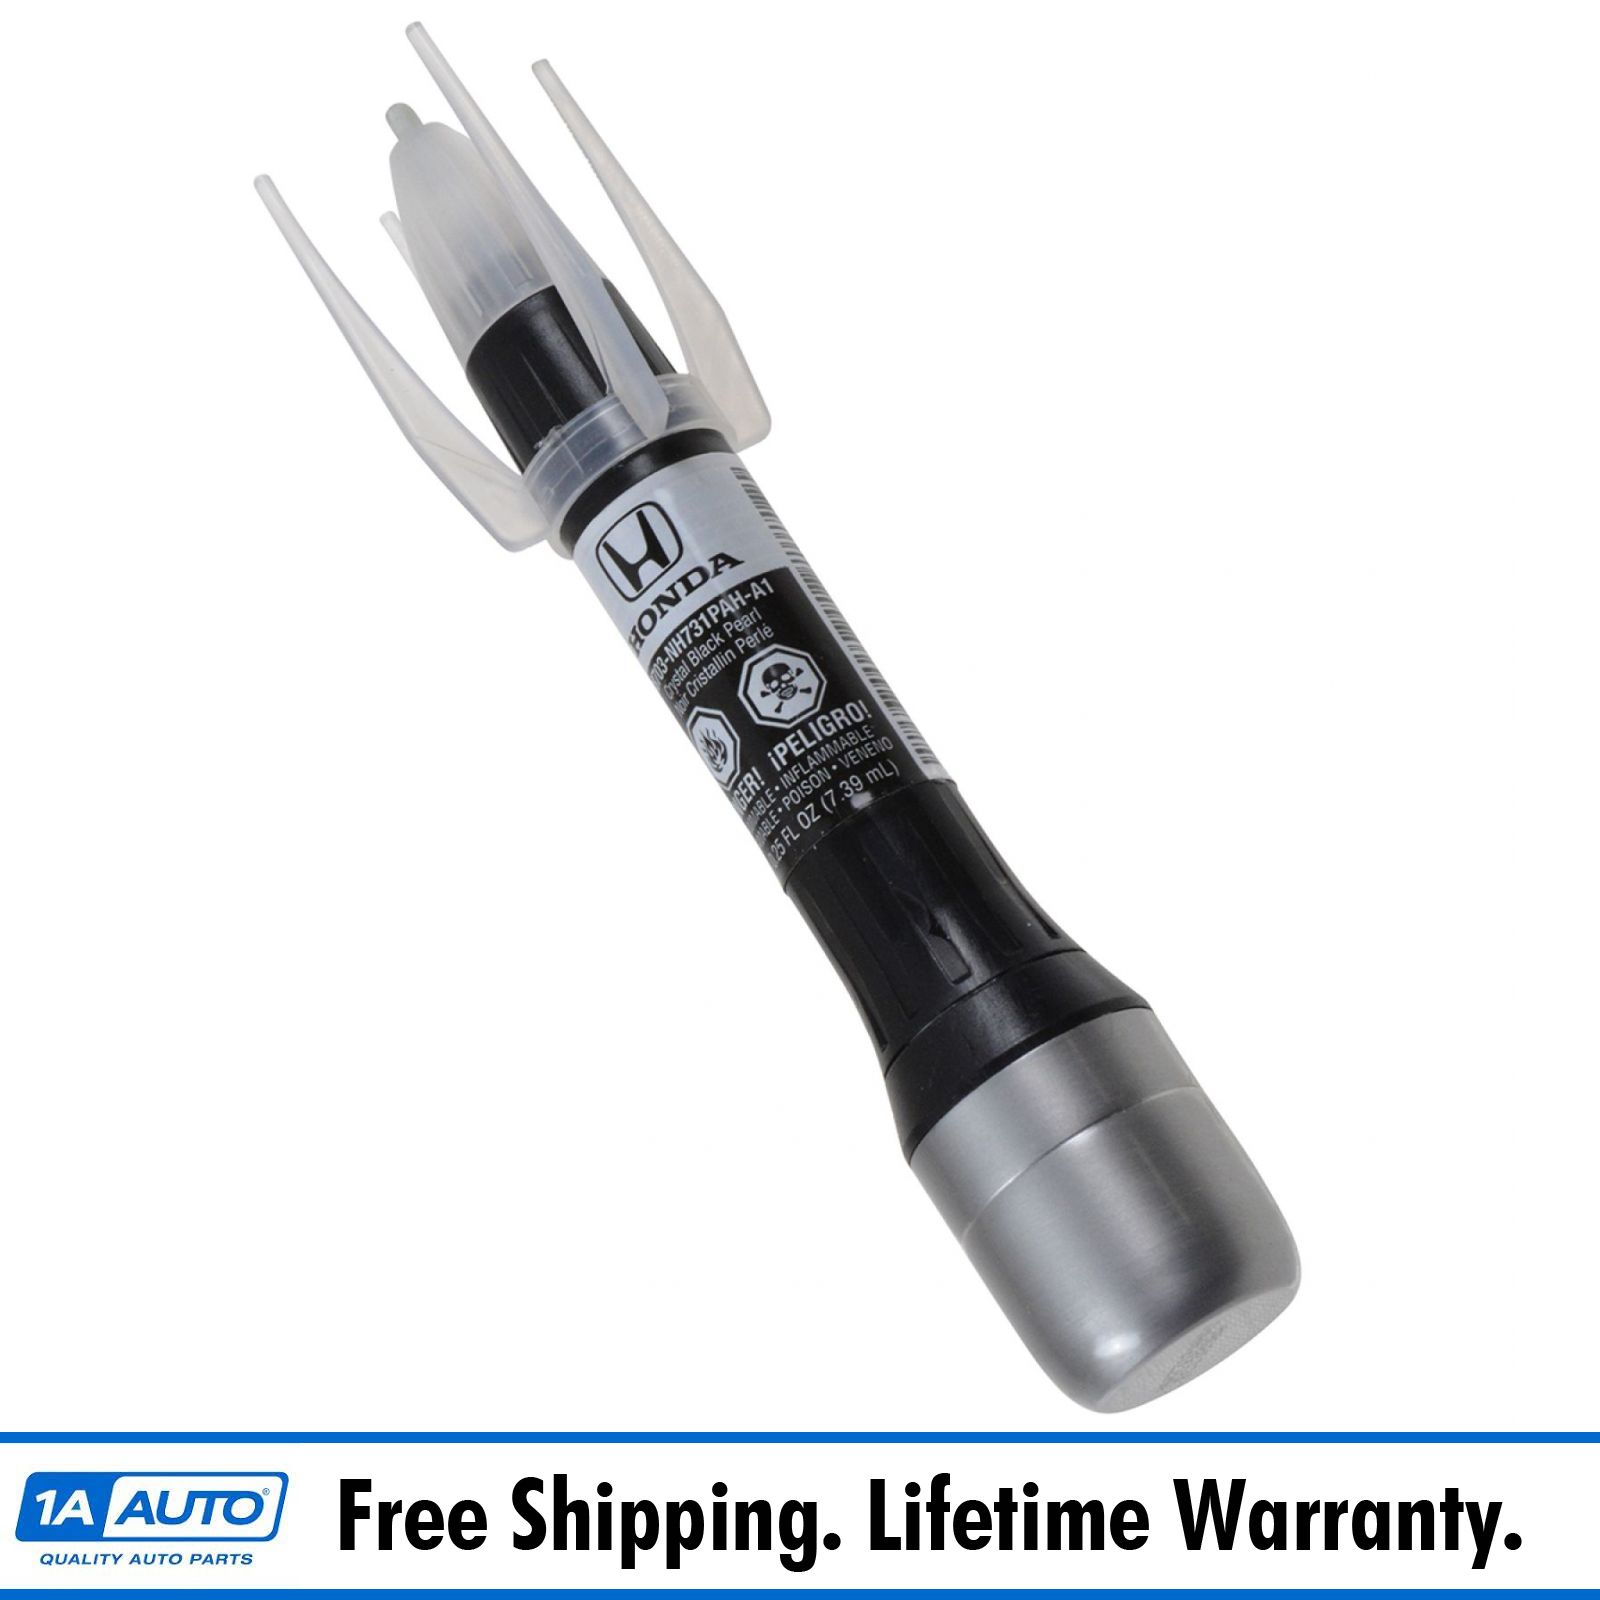 OEM Touch-Up Paint Pen Brush Crystal Black Pearl NH-731P